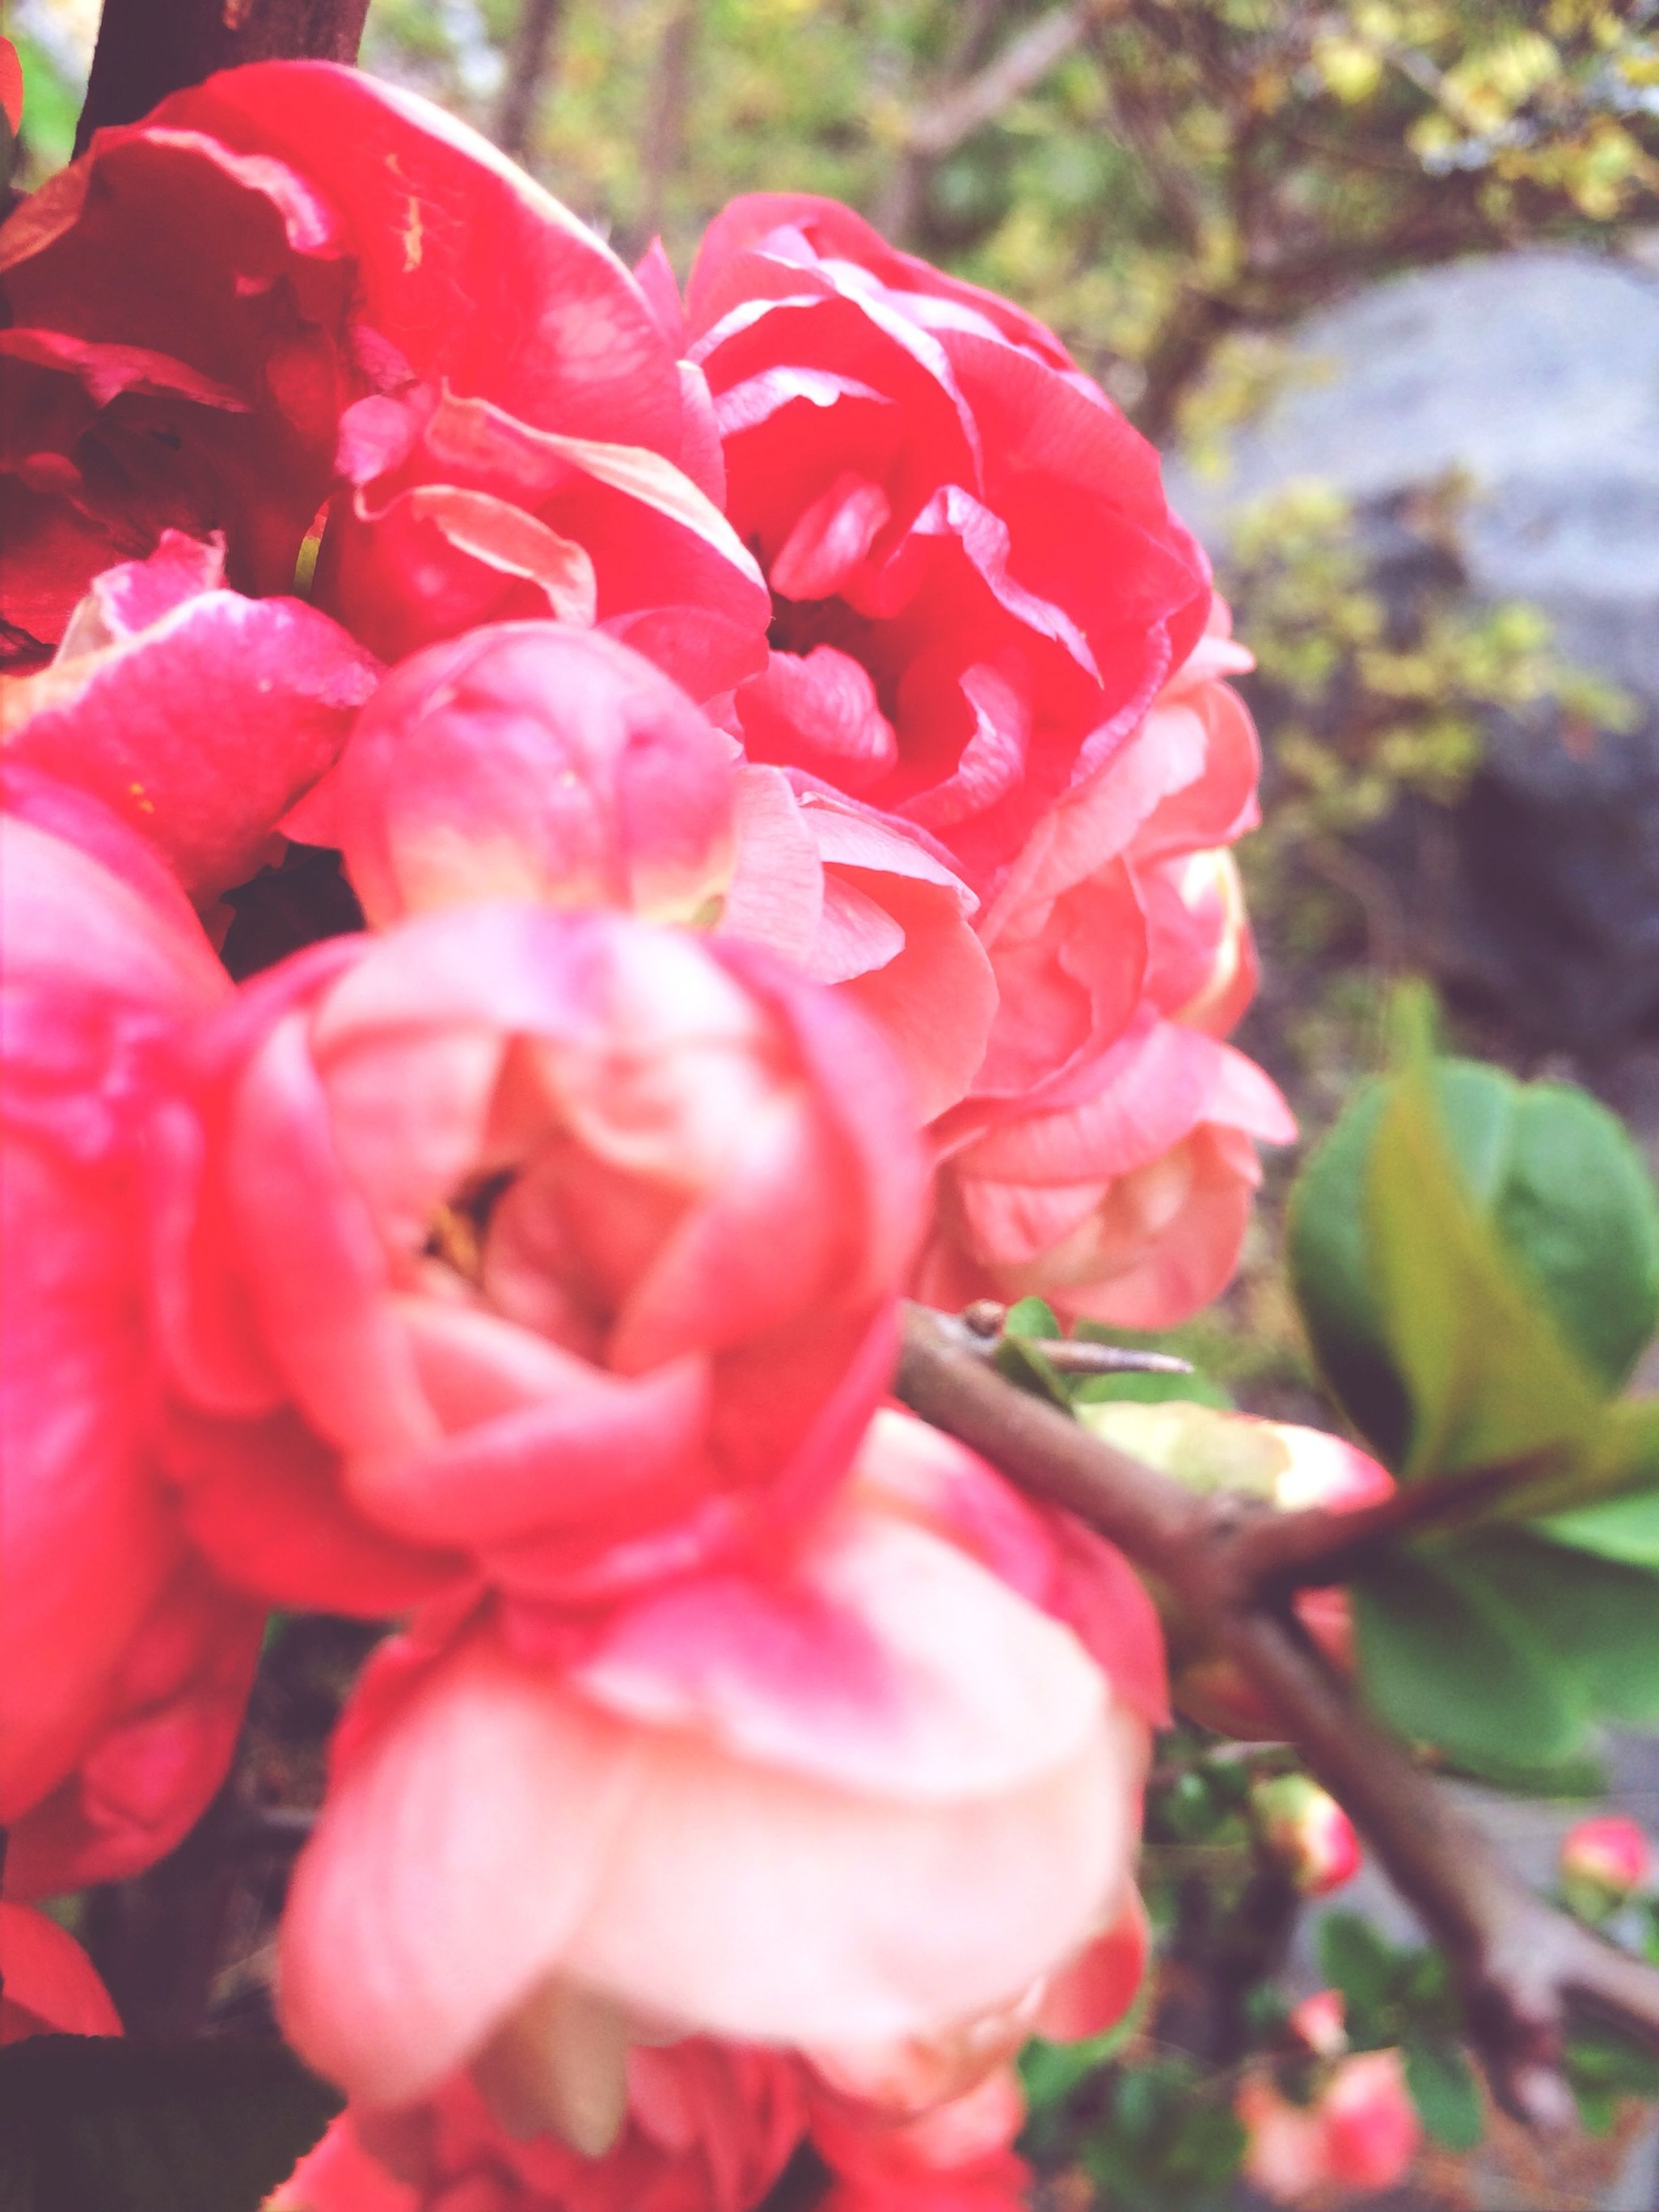 flower, freshness, petal, fragility, flower head, growth, beauty in nature, close-up, focus on foreground, red, nature, blooming, rose - flower, plant, blossom, pink color, in bloom, day, park - man made space, selective focus